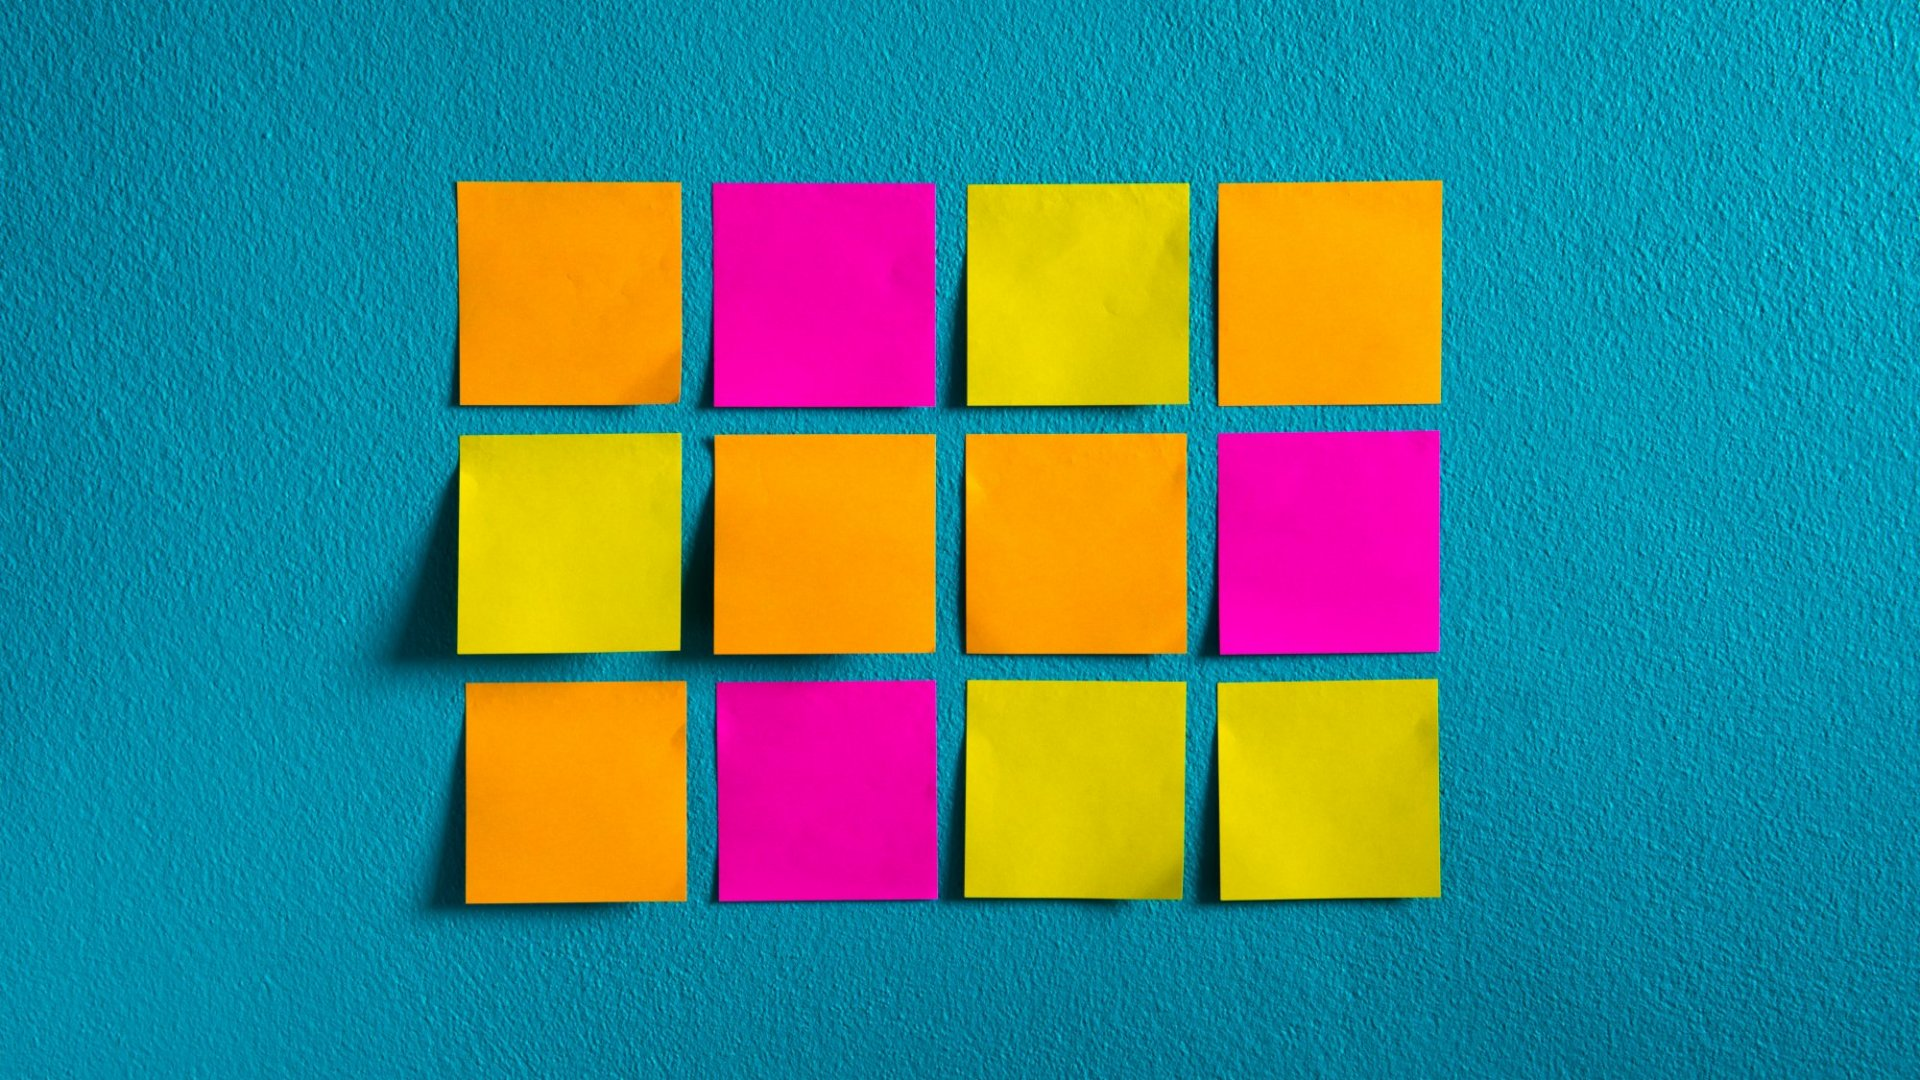 This Post-it Note With 19 Words Can Reshape Your Company's Culture